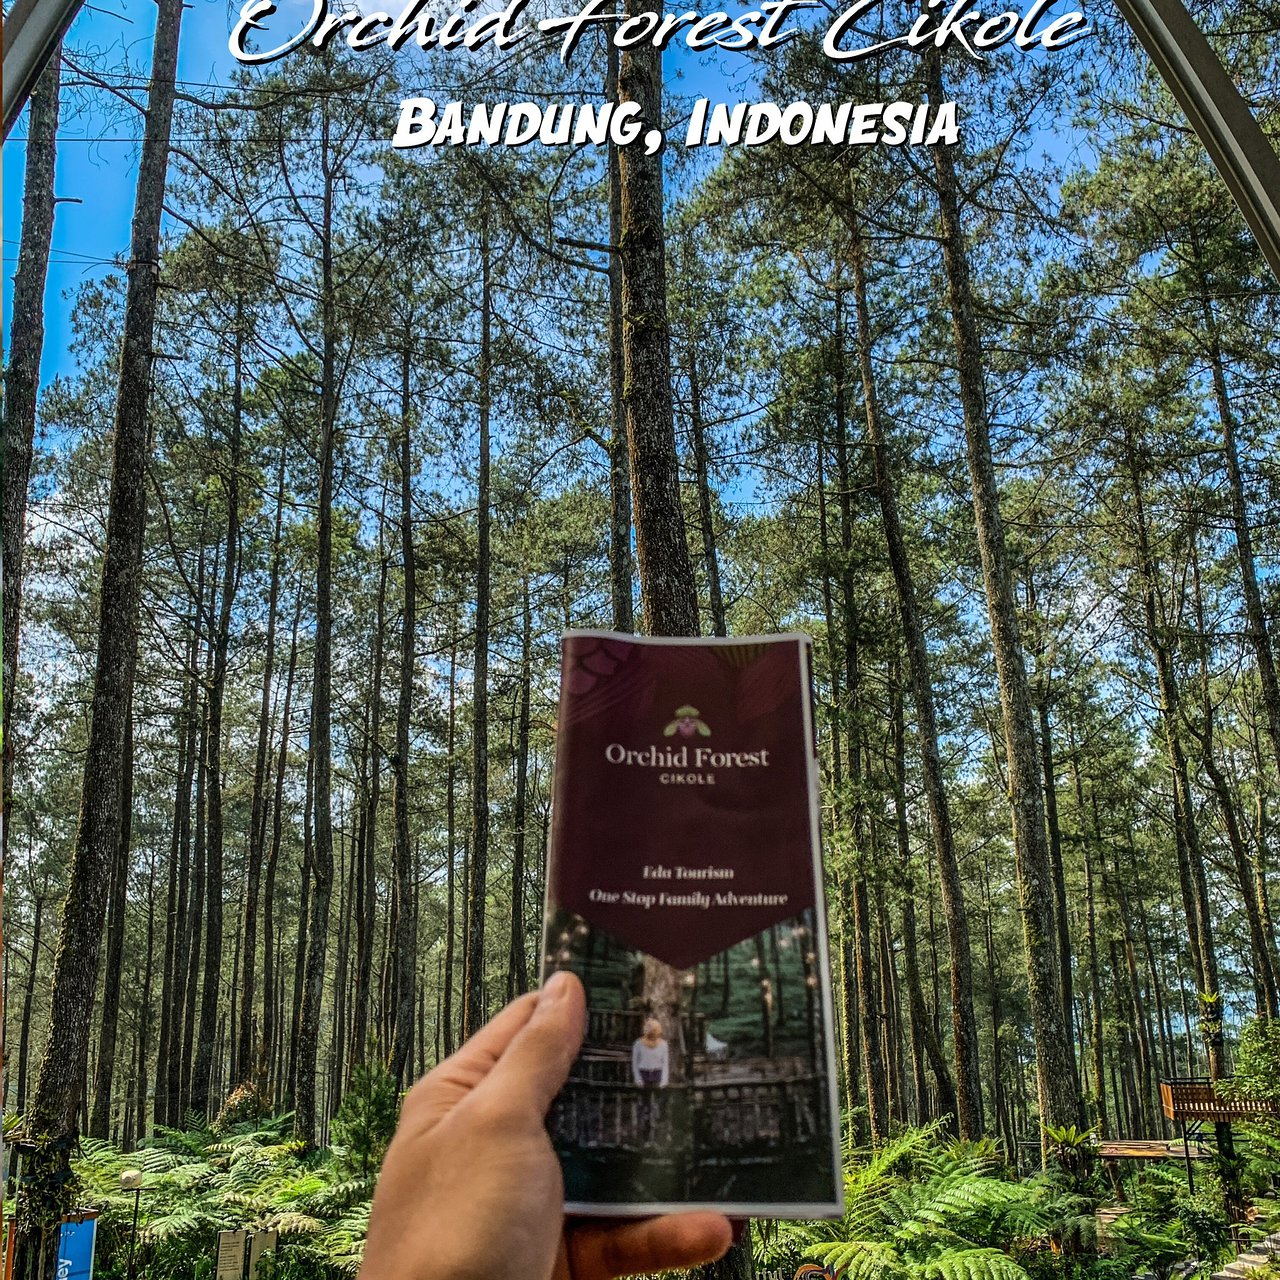 Orchid Forest Lembang 2020 All You Need To Know Before